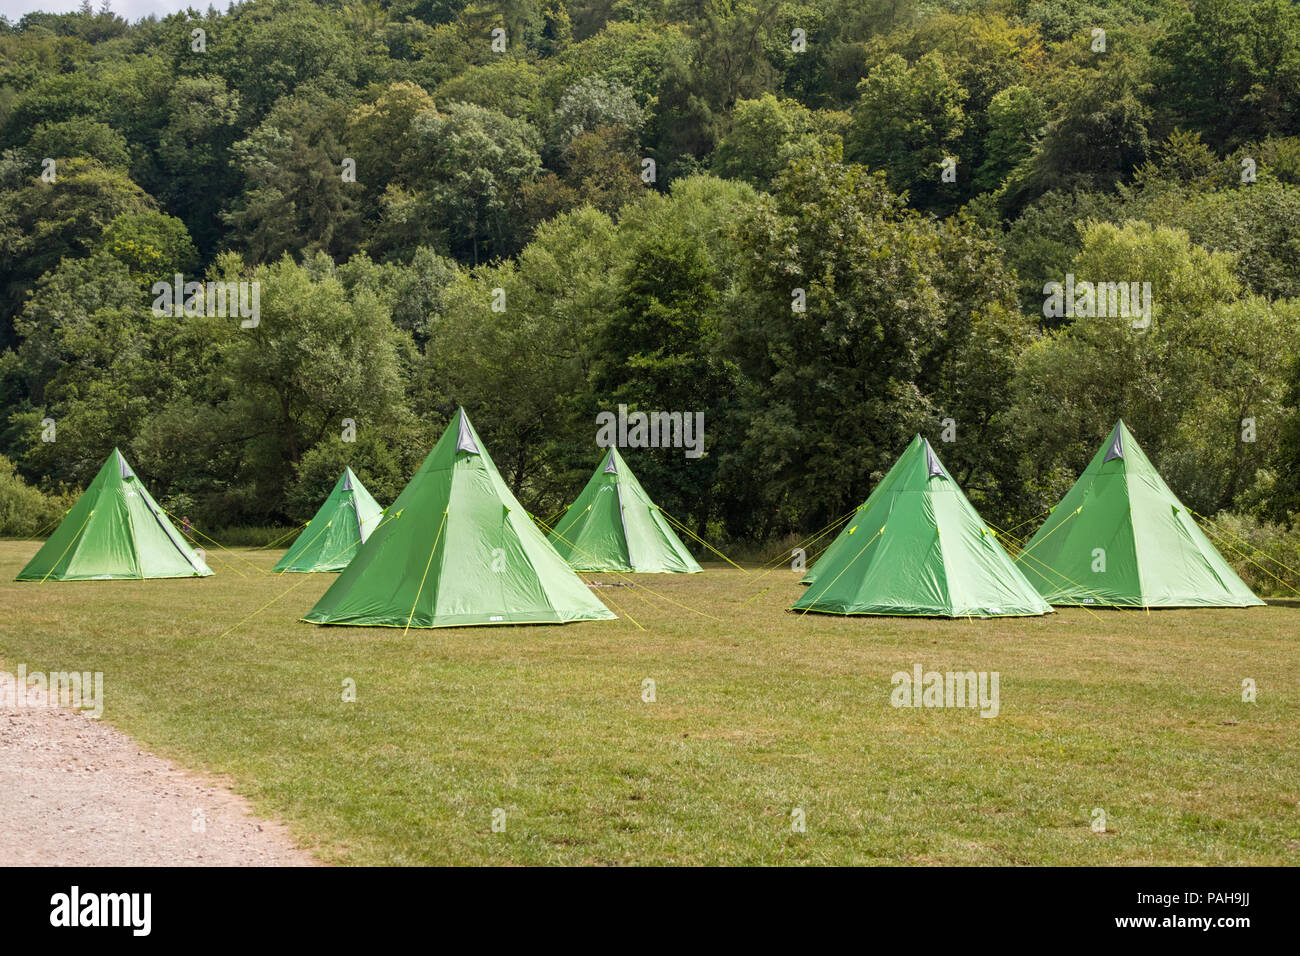 Tipi tents on a campsite, England, UK - Stock Image